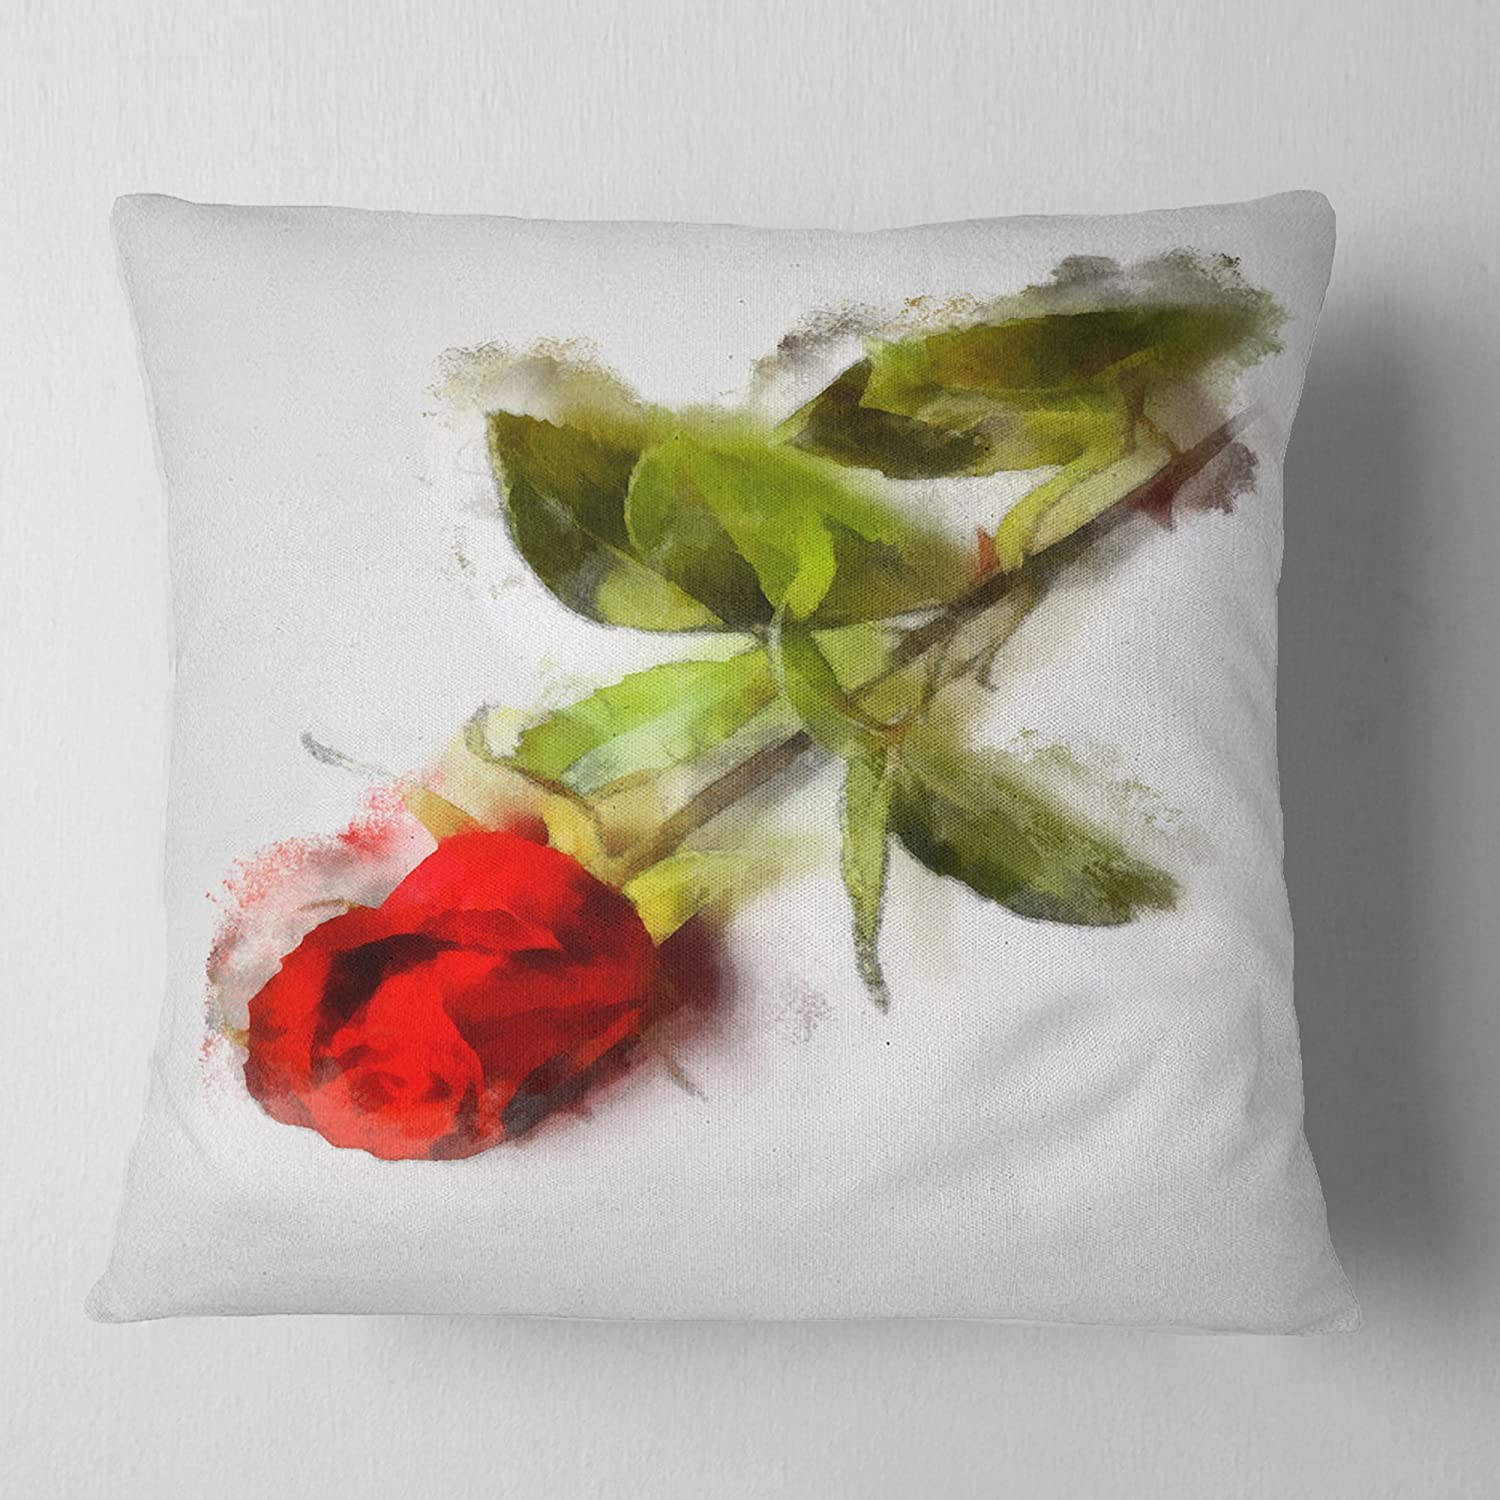 Designart CU13900-26-26 Red Rose with Stem Drawing' Flower Cushion Cover for Living Room, Sofa Throw Pillow 26 in. x 26 in. in, Insert Printed On Both Side